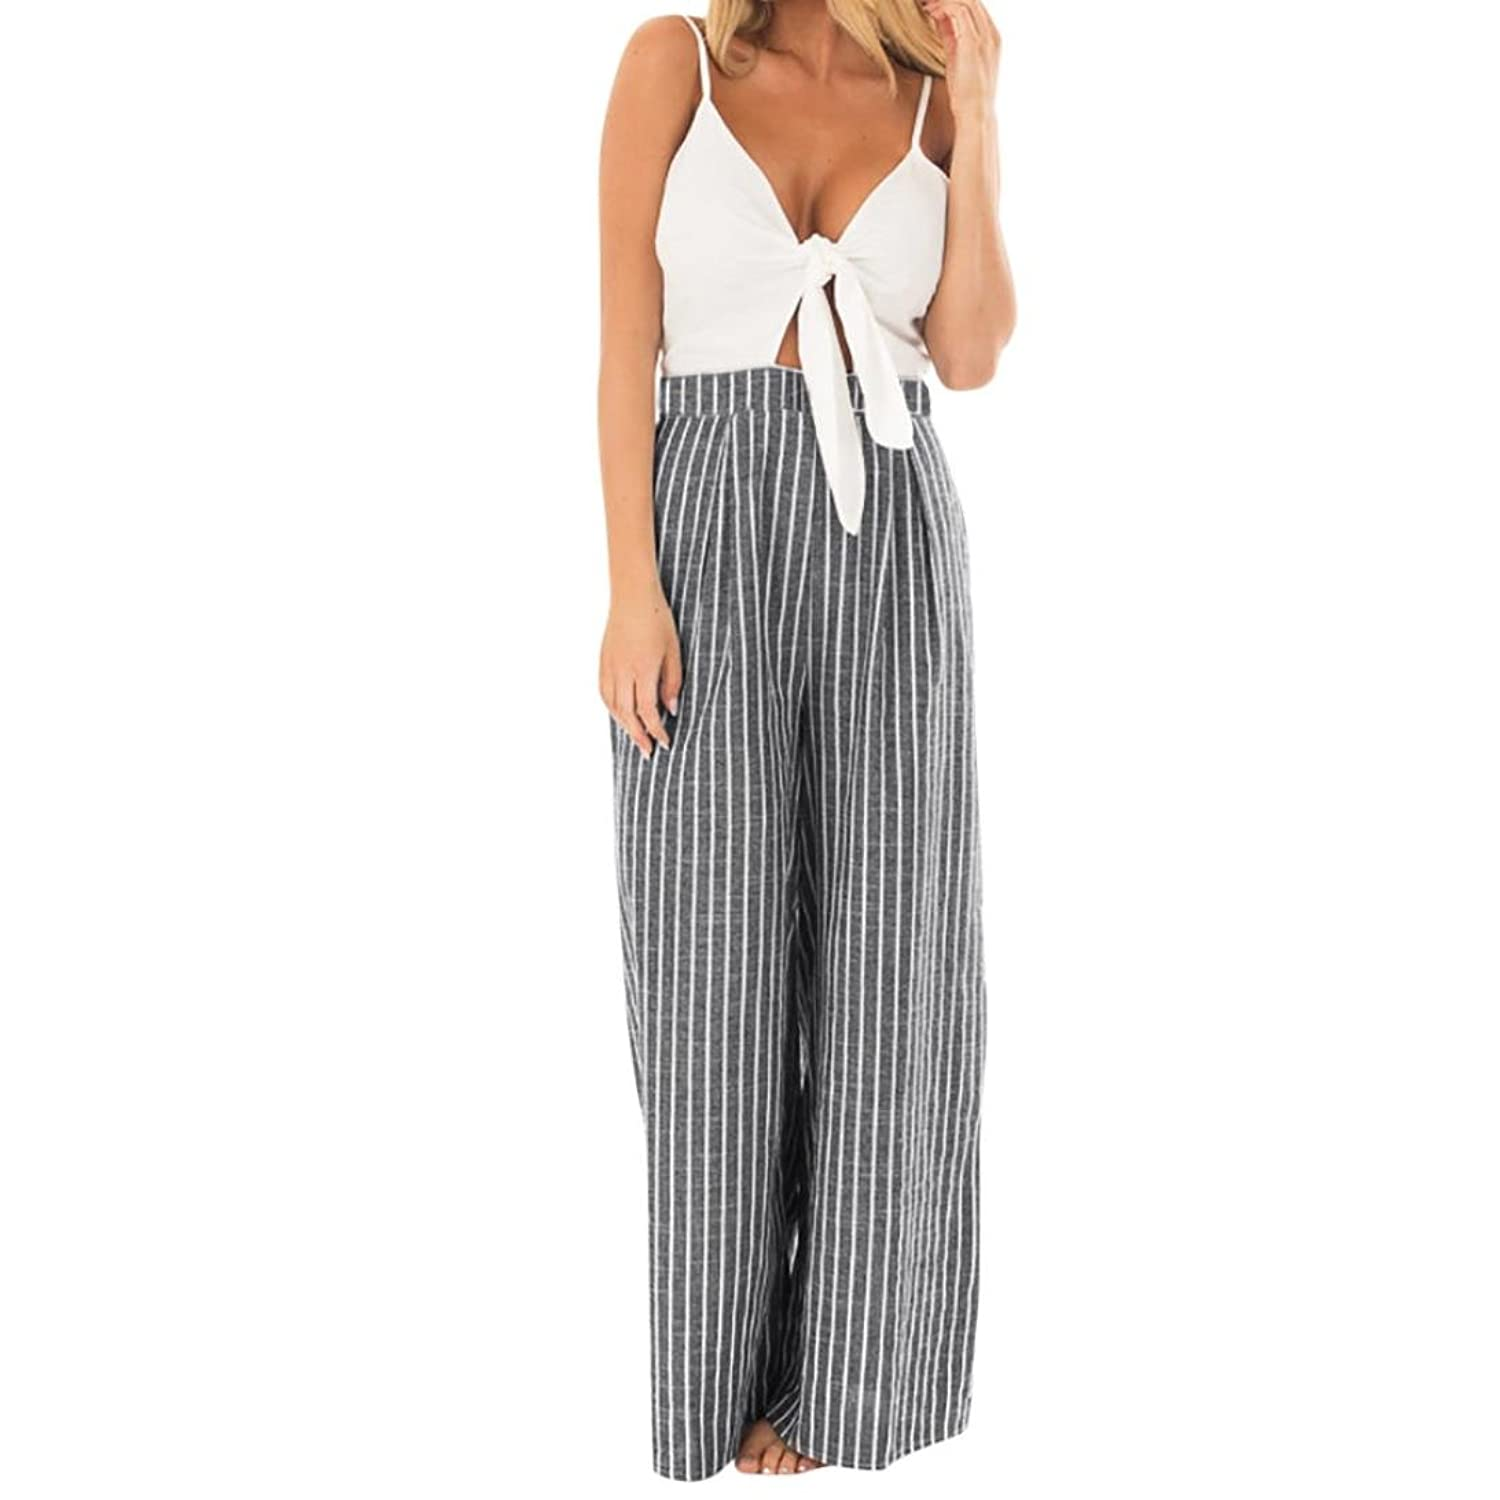 0f092b7ff151 About  Striped jumpsuits ❦ Sling rompers wide leg playsuits long pants  bandage bodysuits striped rompers sling playsuits wide leg pants long  bodysuits ...